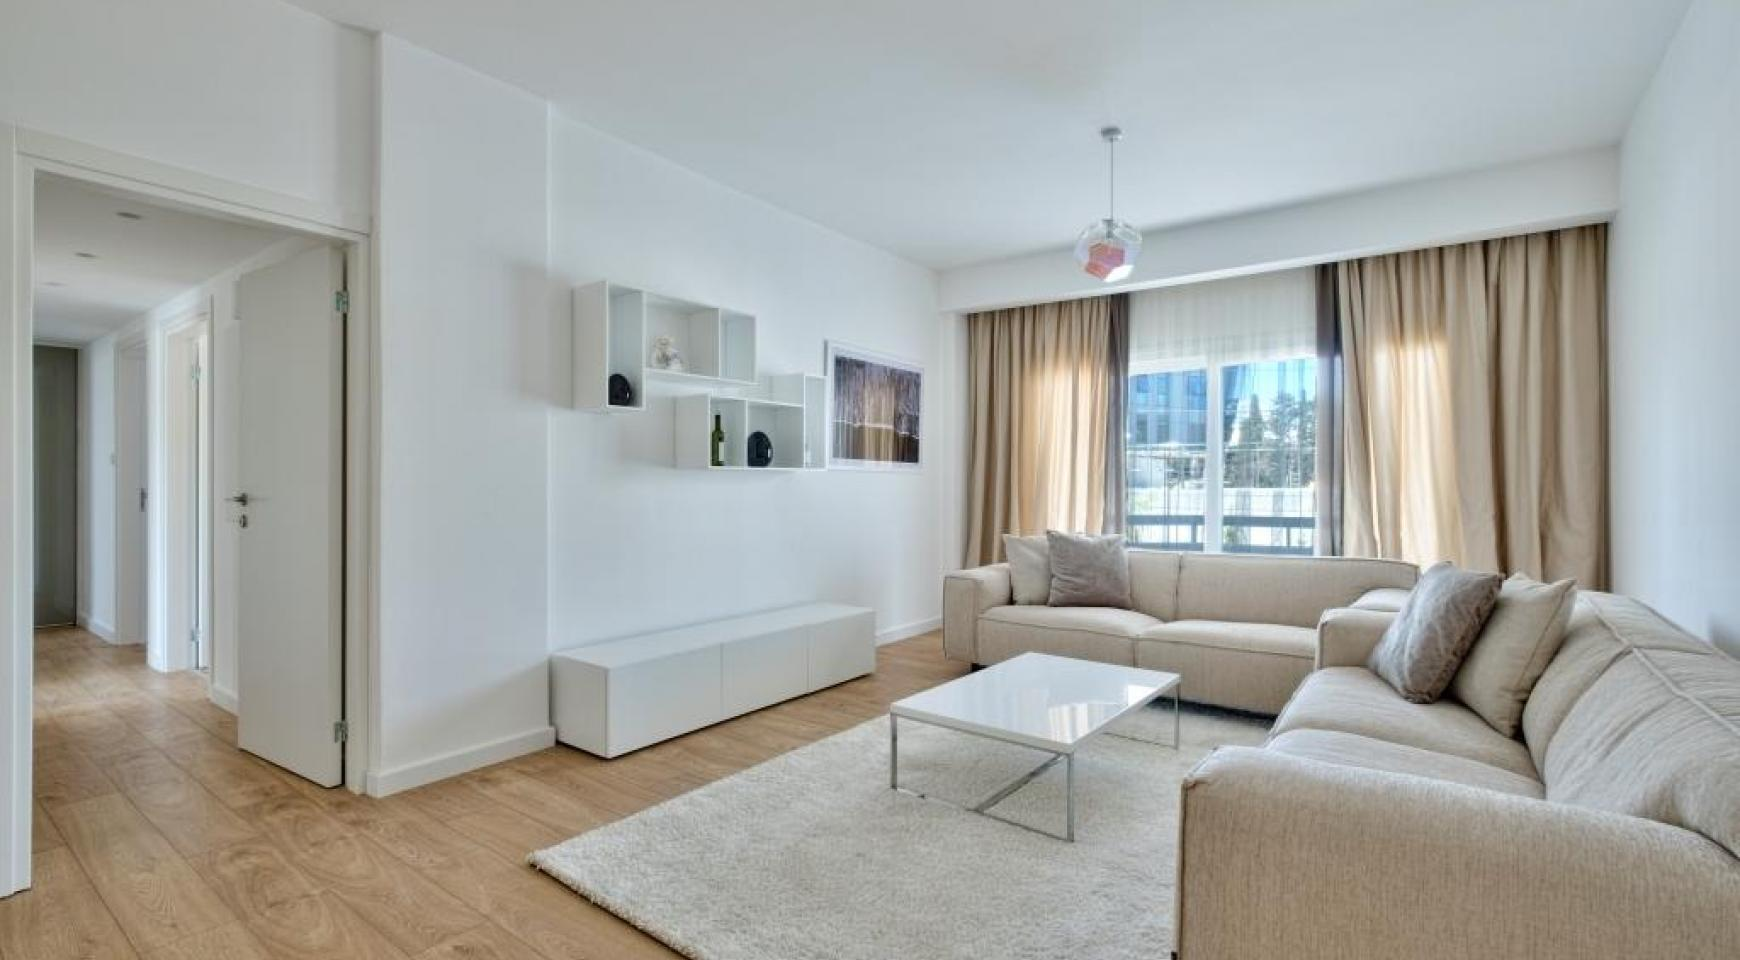 Modern 3 bedroom apartment situated in the Crown Plaza area - 15